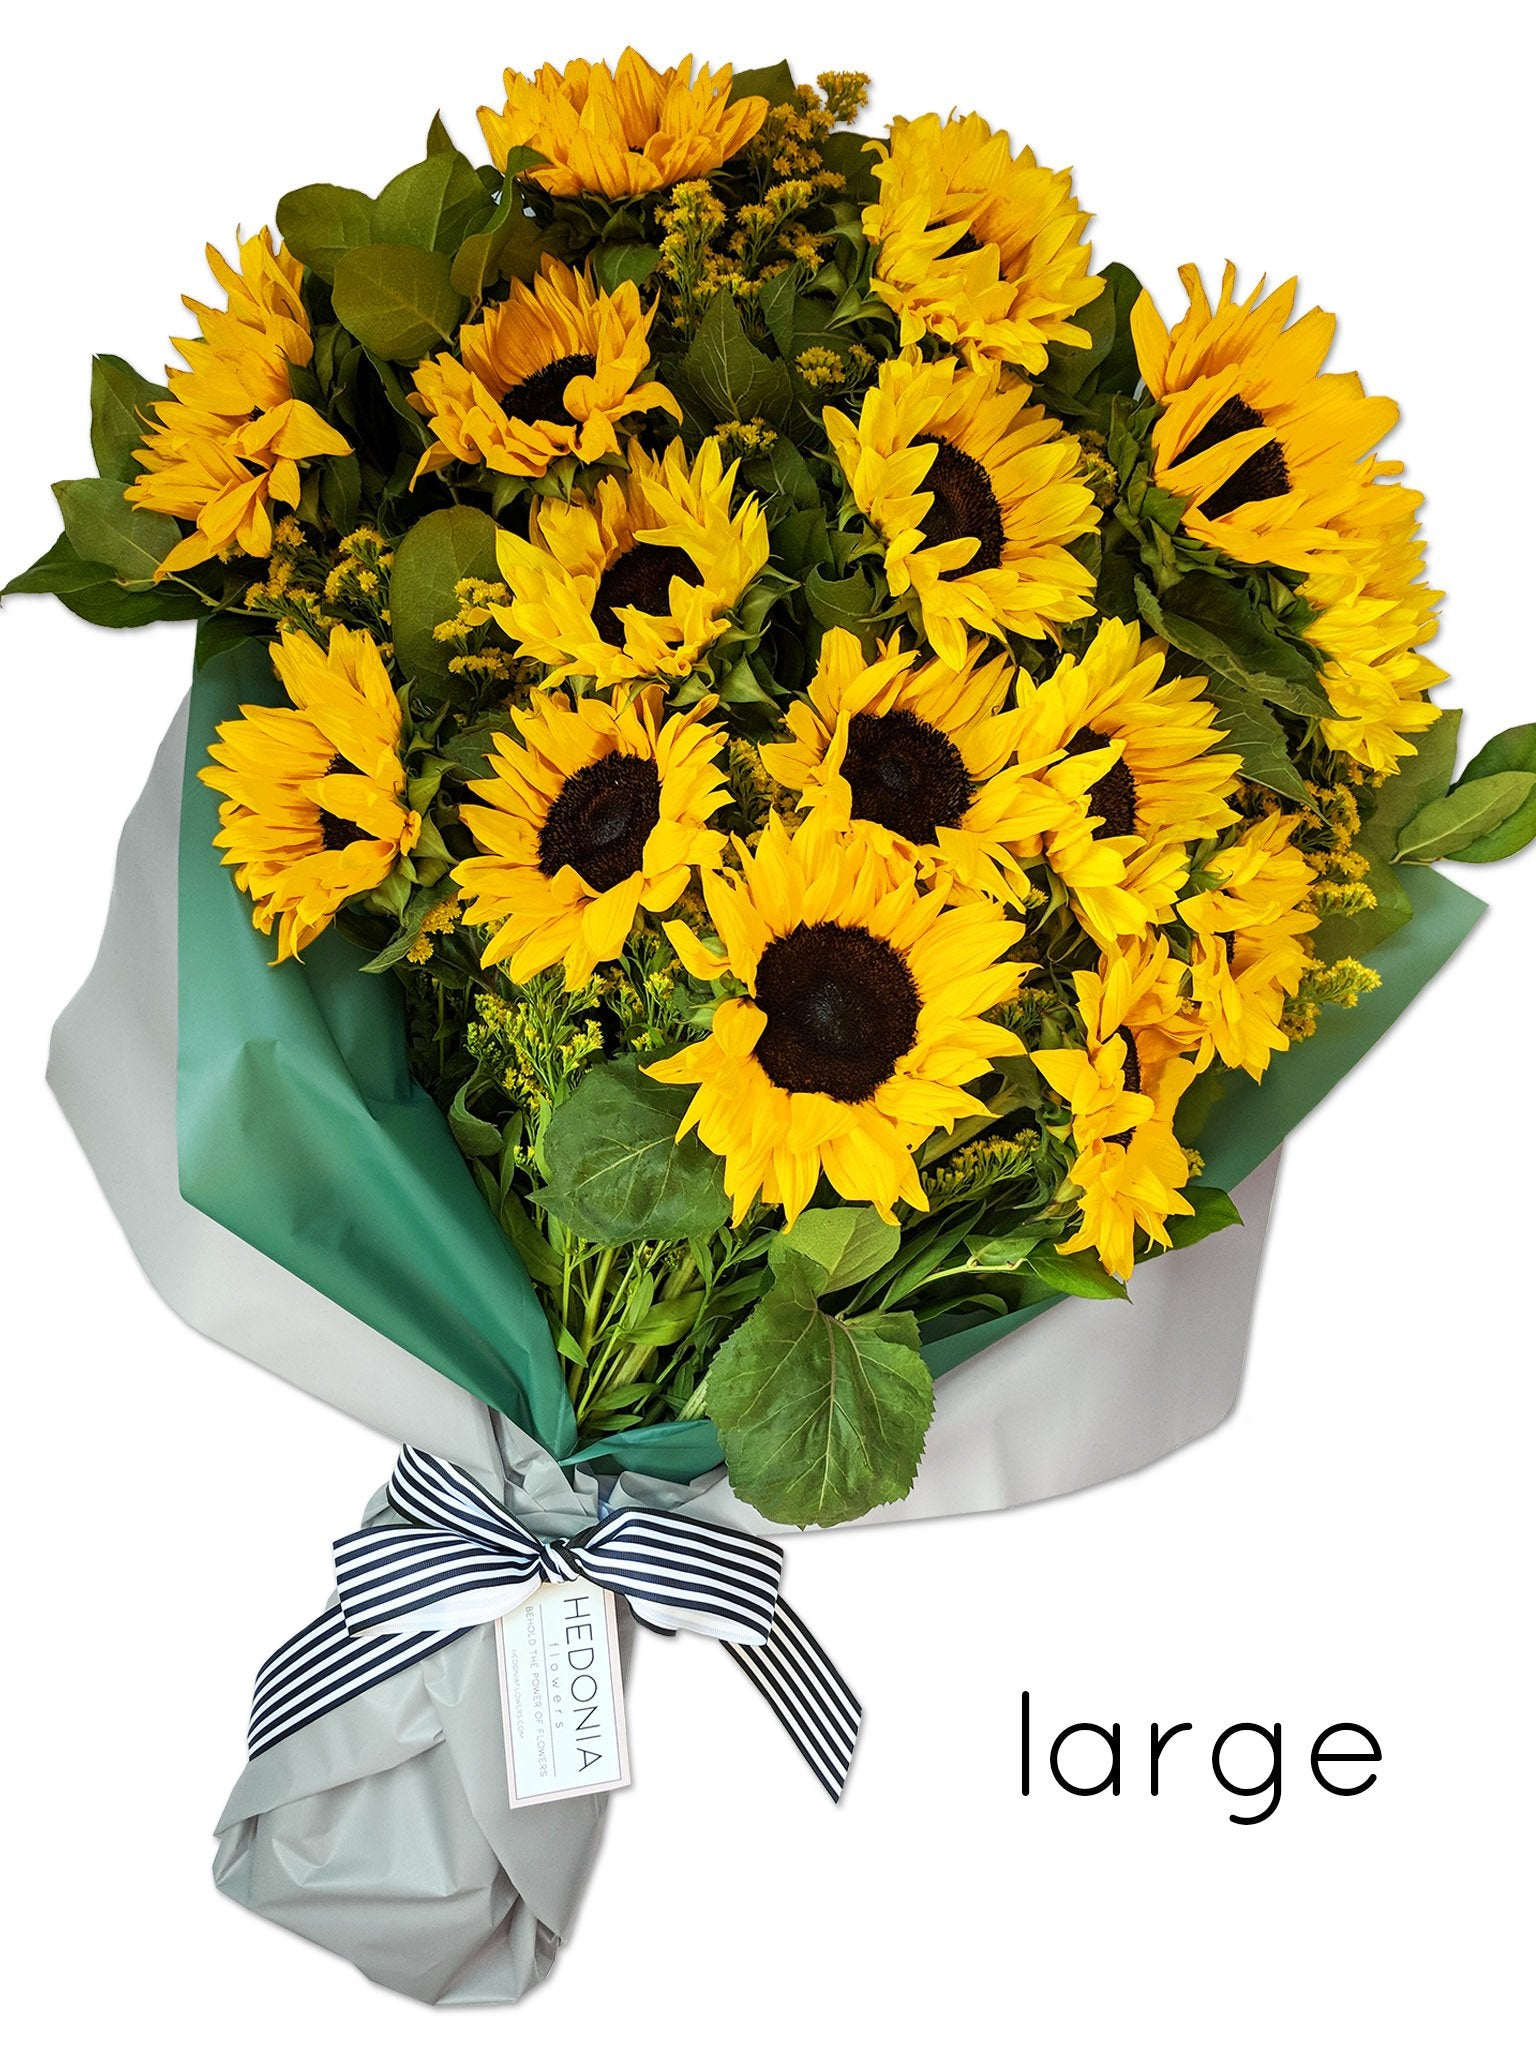 Hedonia flowers designer bouquets for the 21st century nosadflowers sunflower bouquet from hedonia flowers premium flowers with free next day delivery to chicago izmirmasajfo